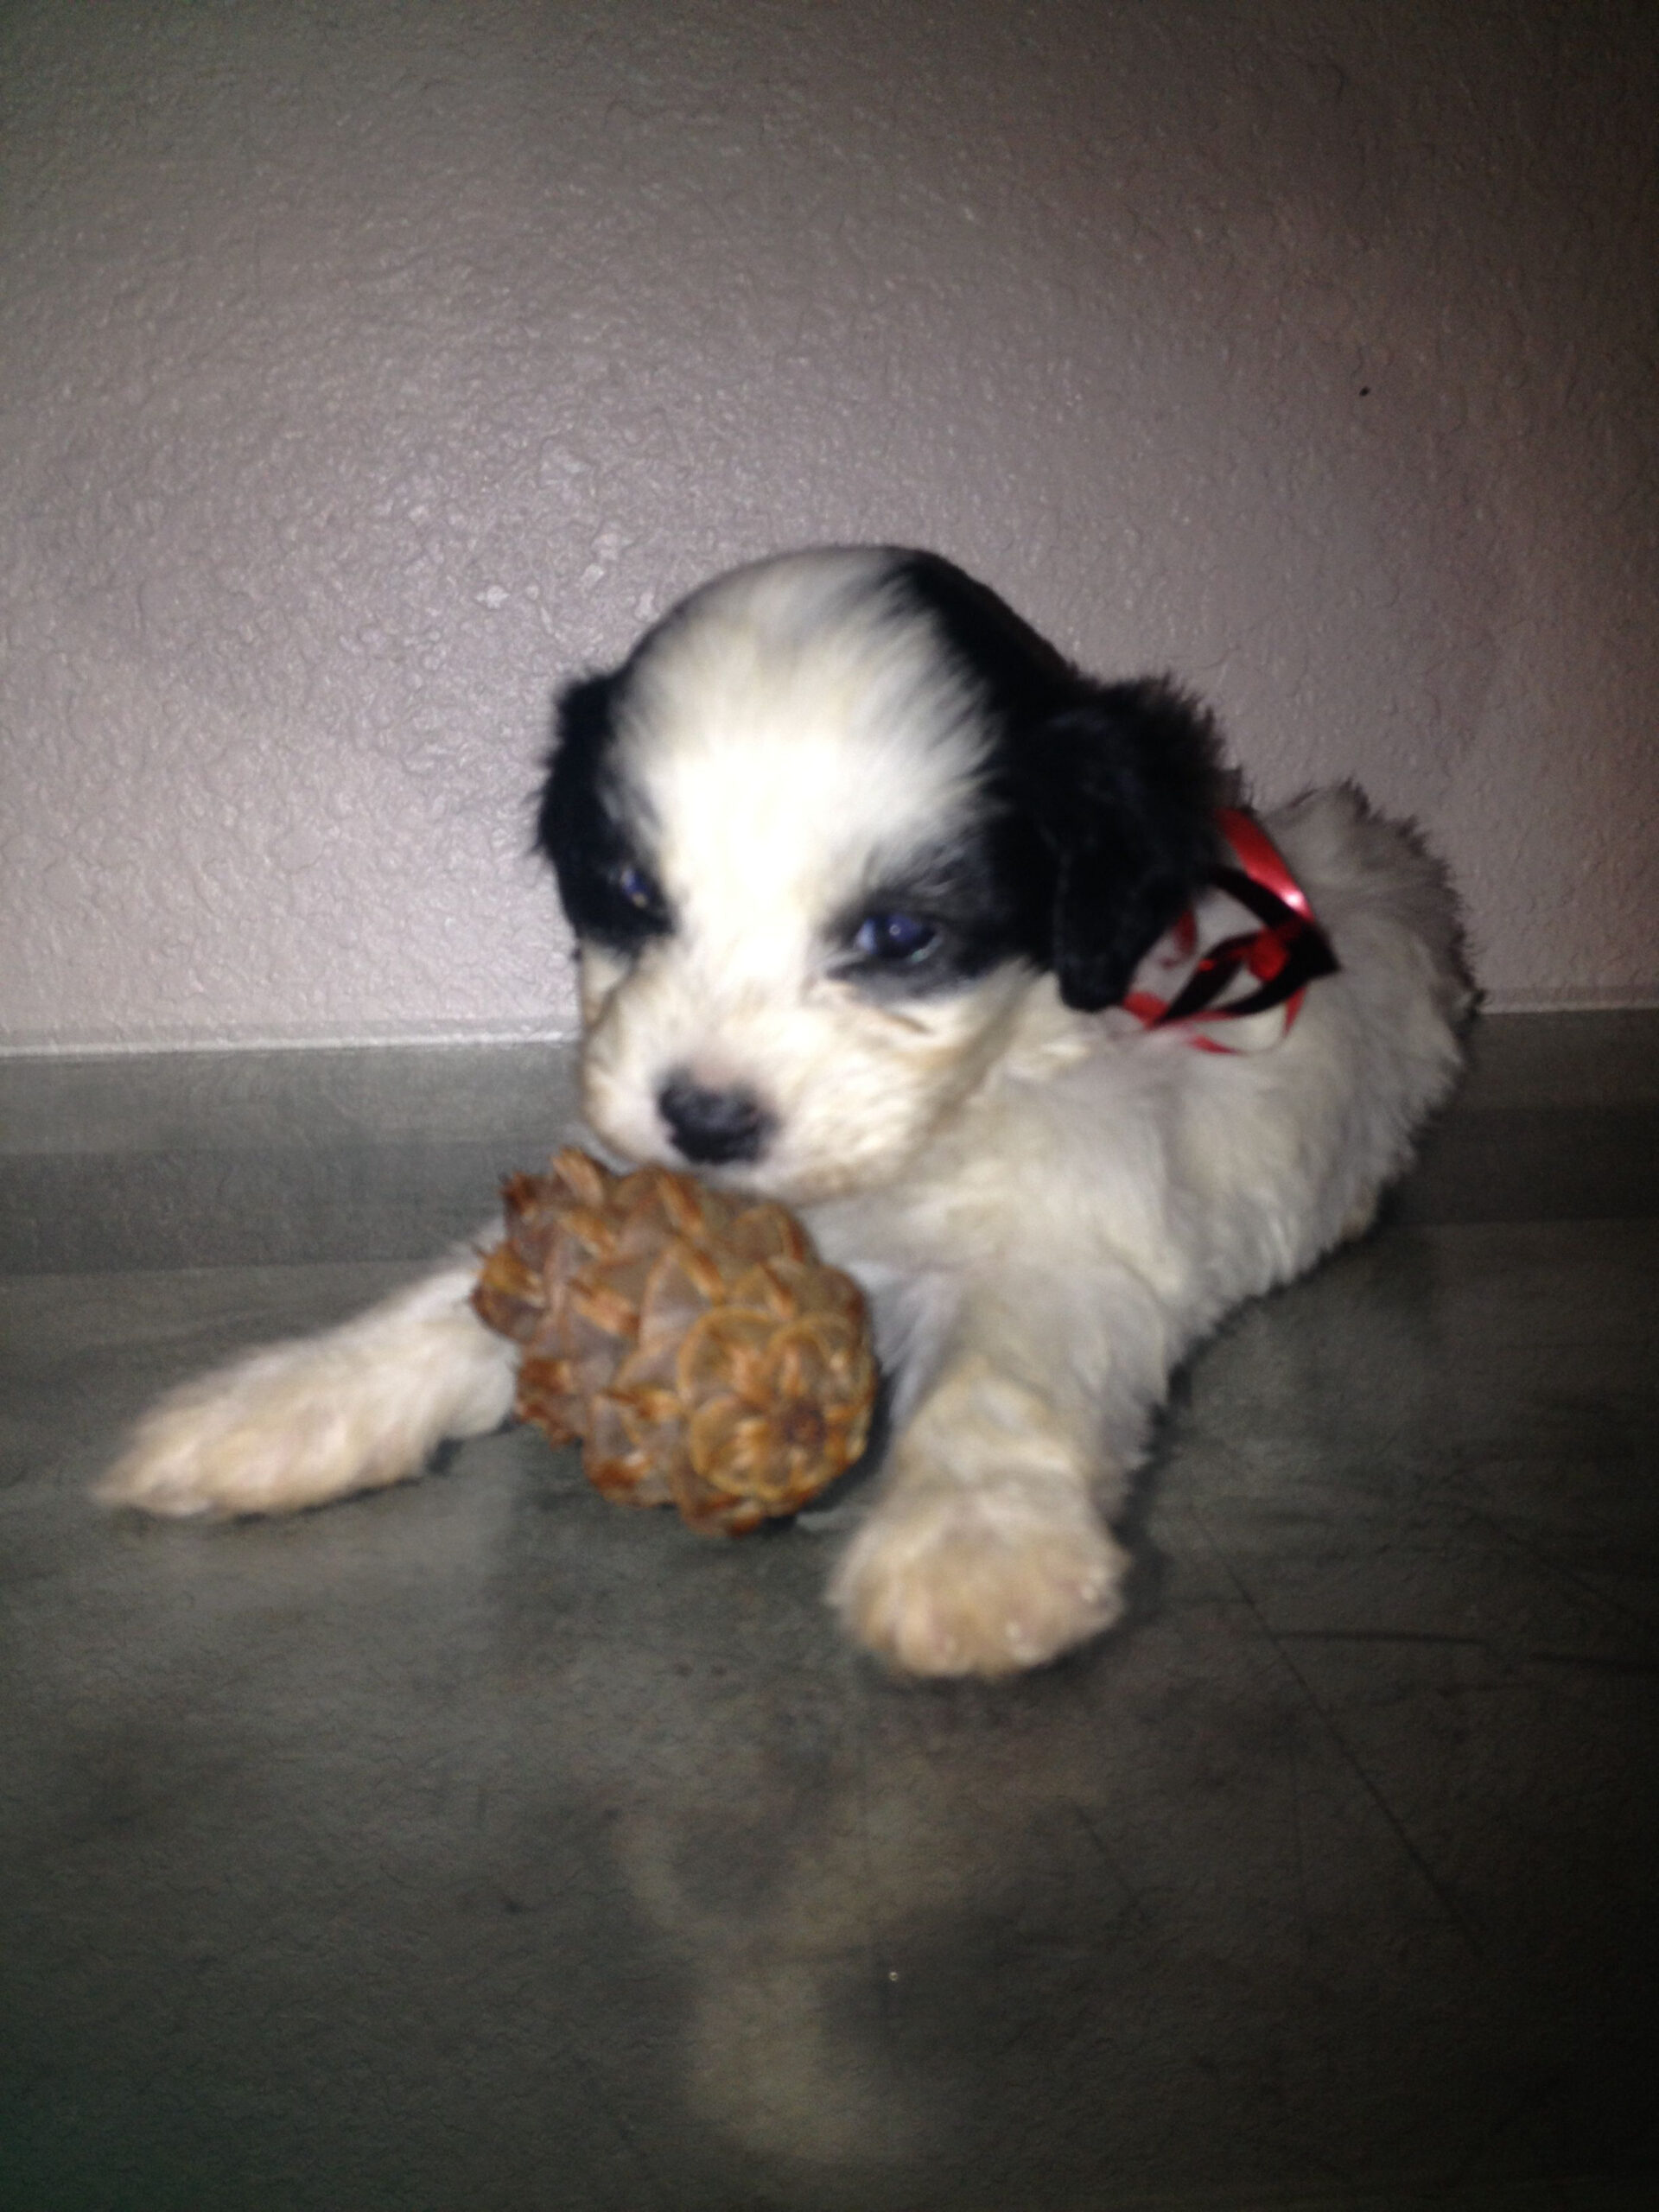 Cute Puppies For Sale Under 100 Dollars Near Me